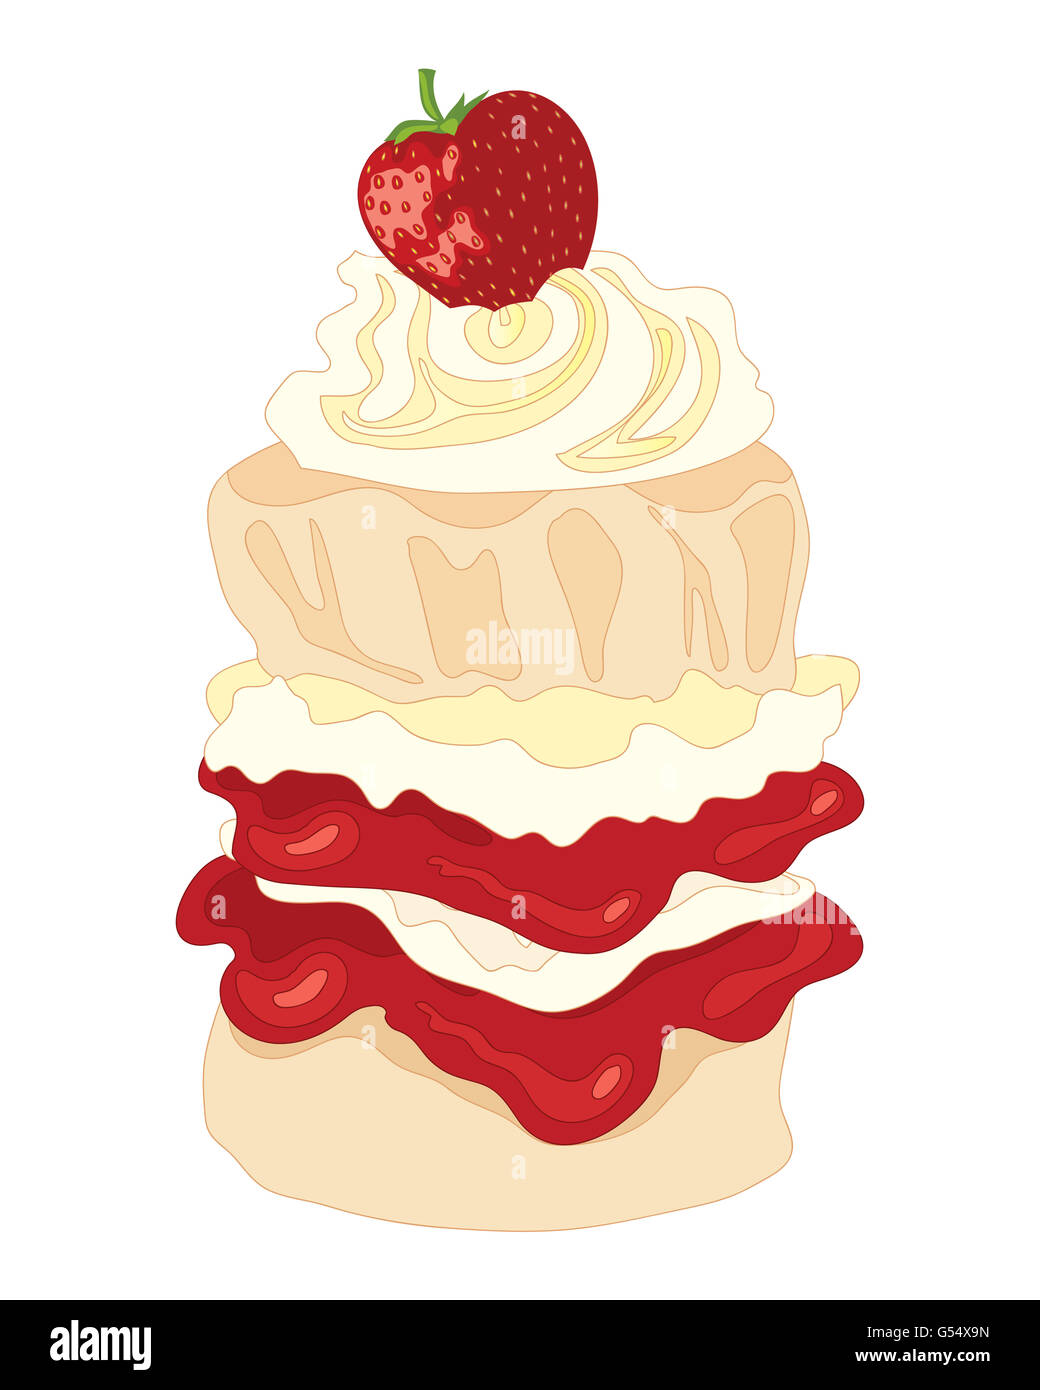 a tall cream and jam scone with layers of filling a cream swirl and a strawberry on top with a white background - Stock Image